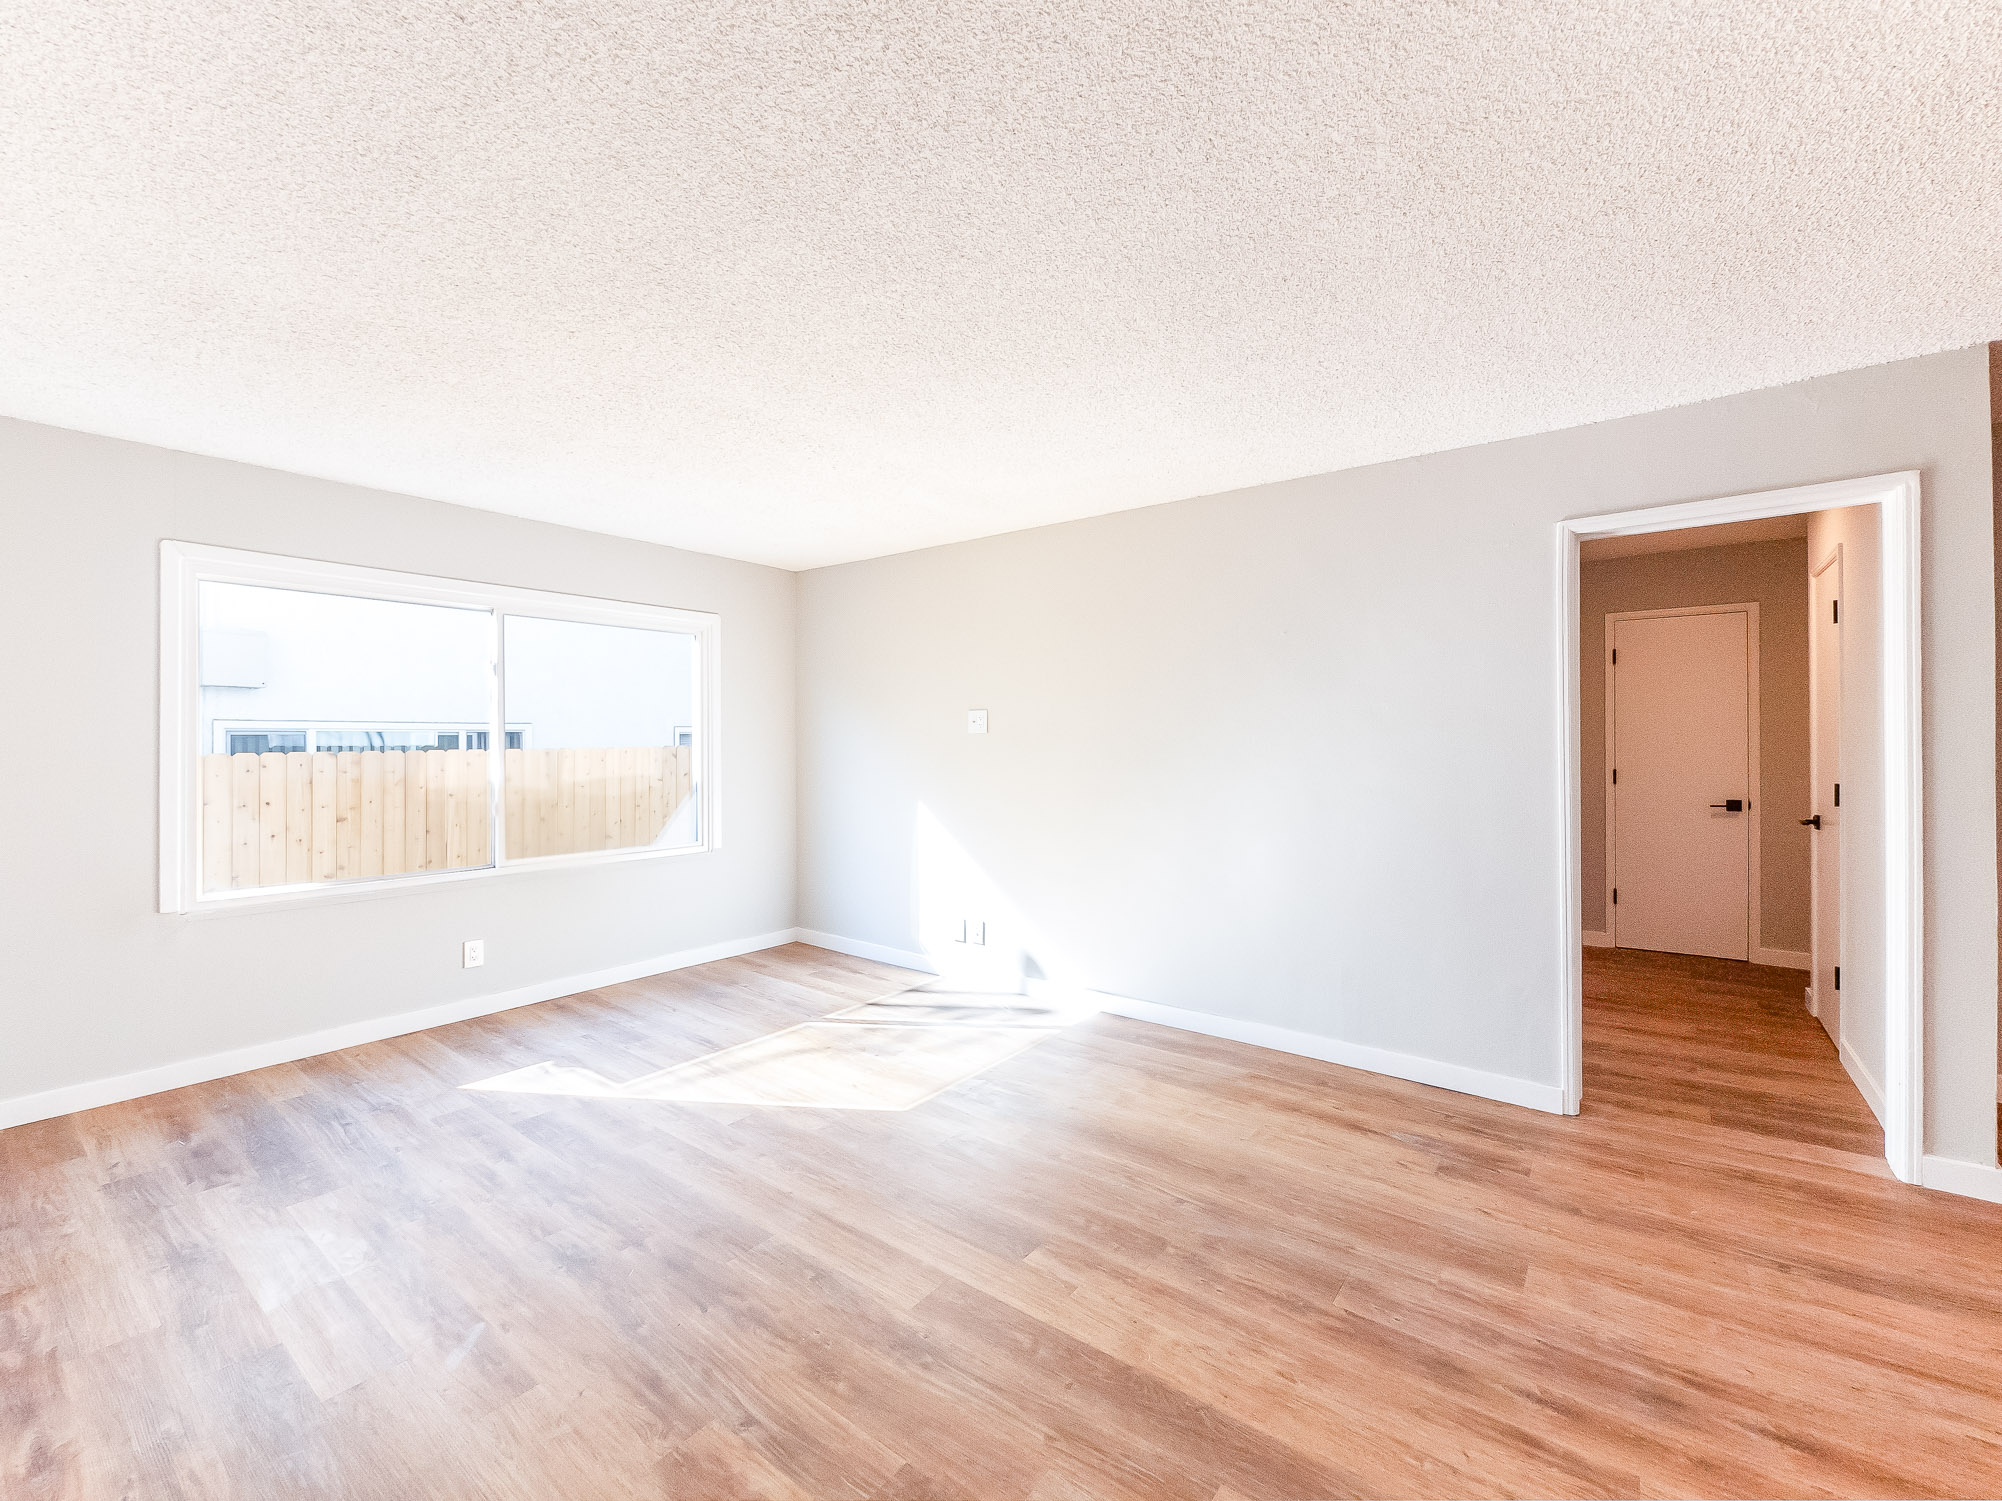 Completely renovated w/ Sleek new updates | 1 Bed 1 Bath in NOHO Arts District Near Lankershim & Burbank Blvd.